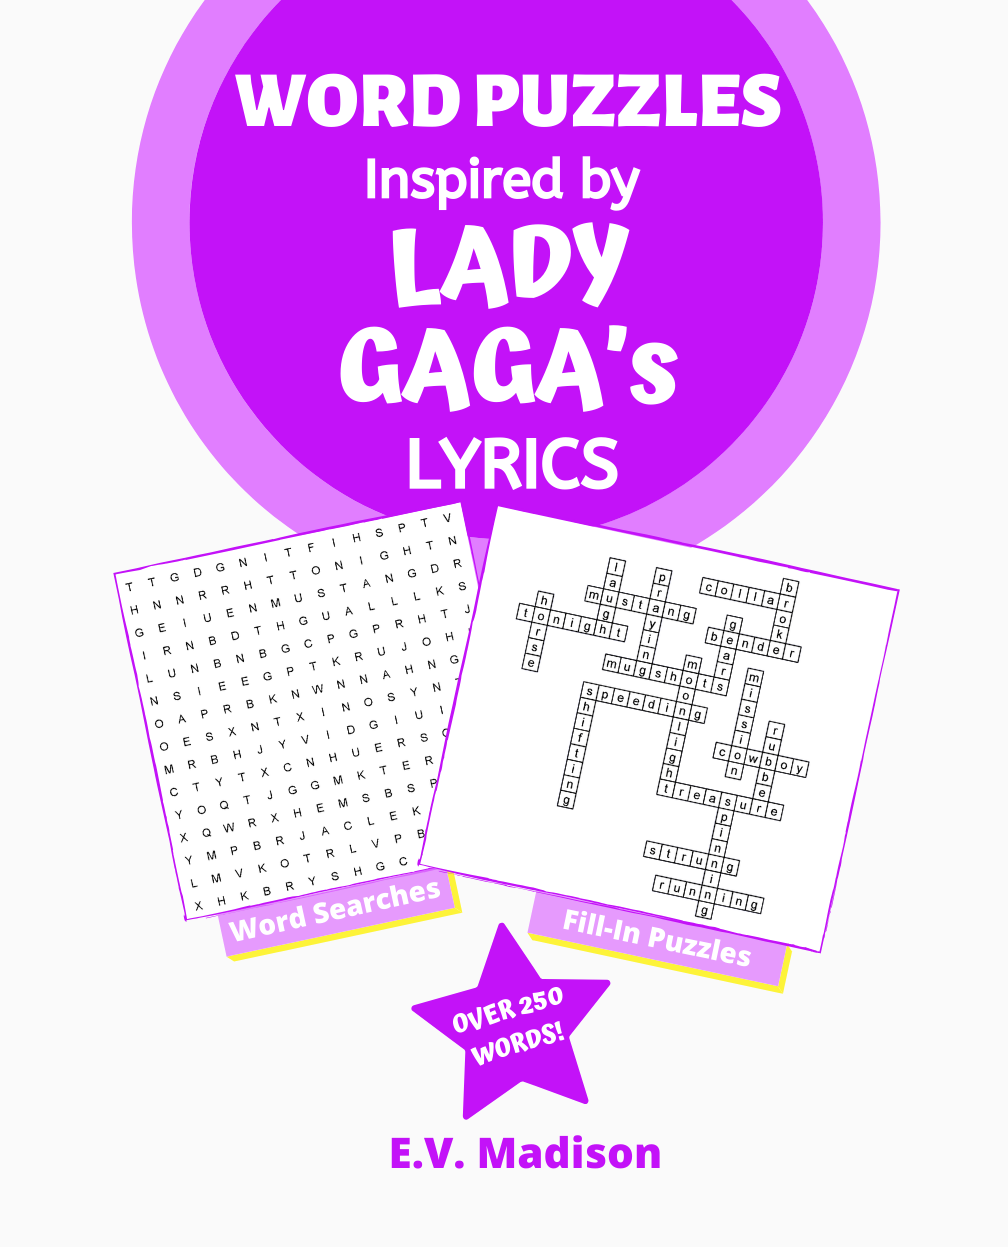 Word Puzzles Inspired by LADY GAGA's Lyrics